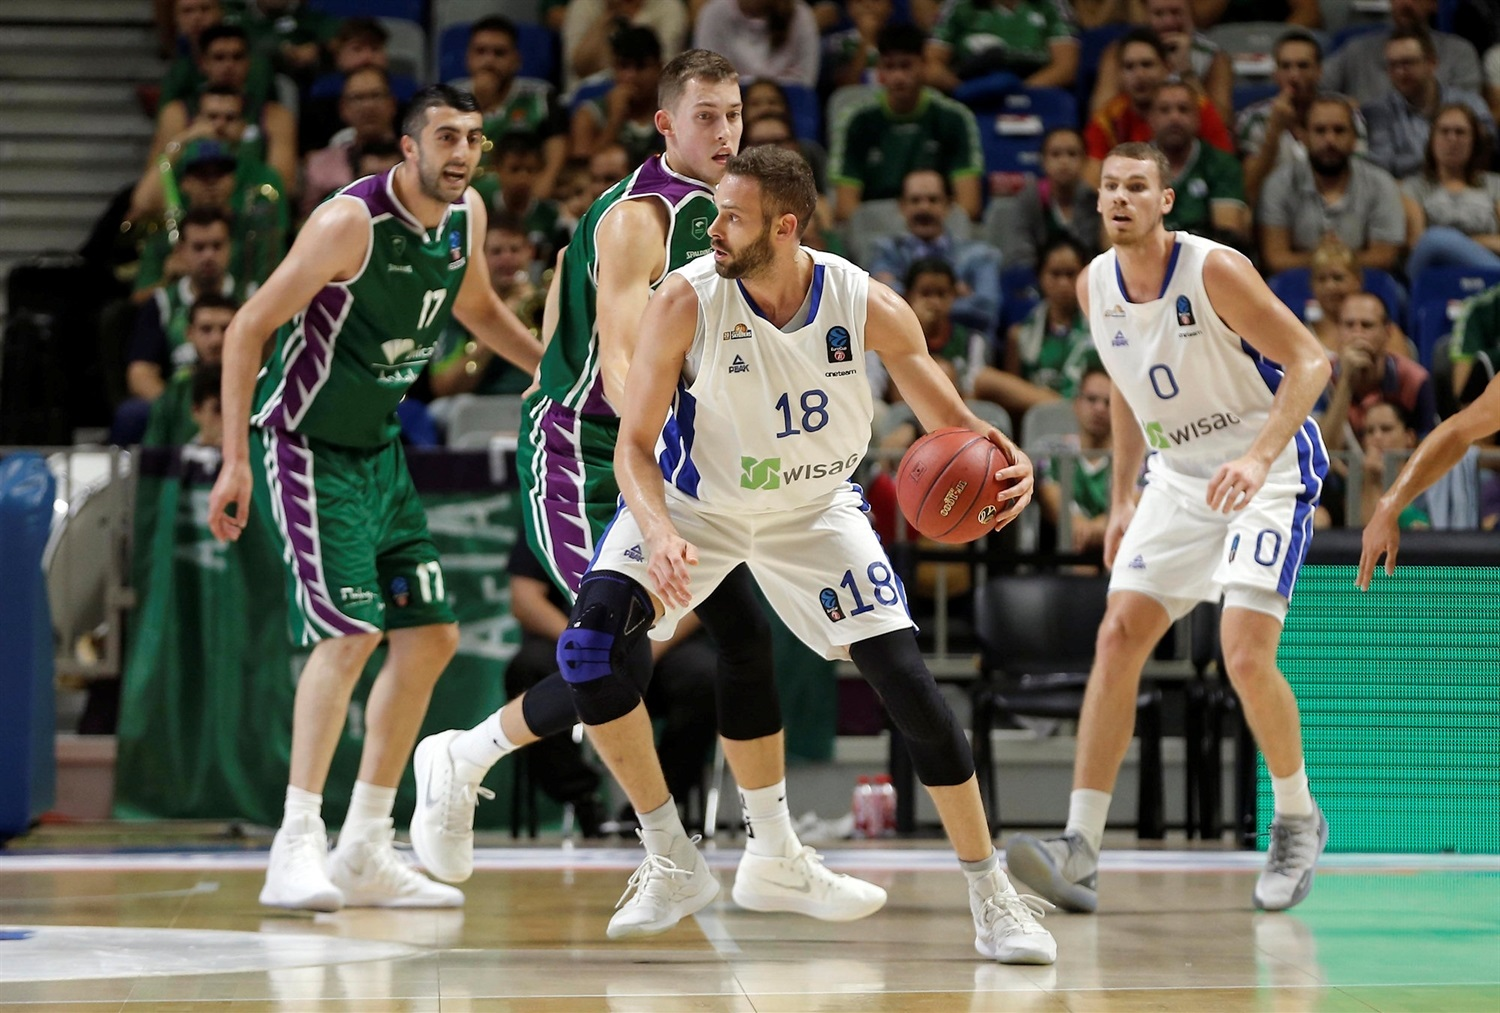 Jonas Wohlfarth-Bottermann - Unicaja Malaga (photo Unicaja) - EC18